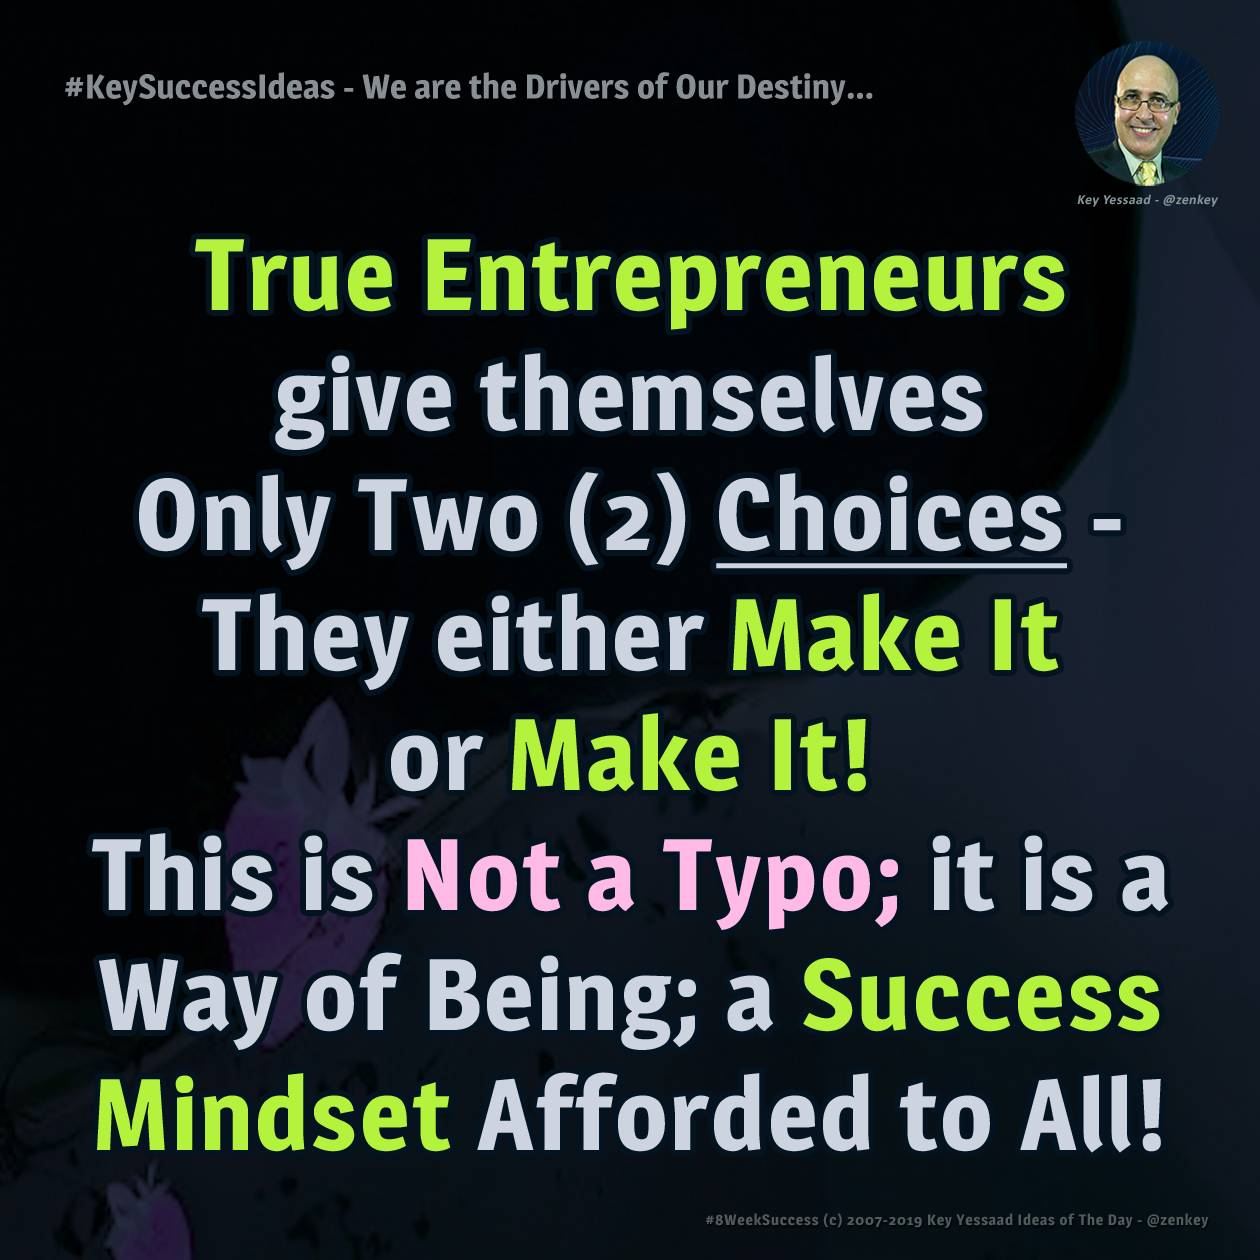 #KeySuccessIdeas - We are the Drivers of Our Destiny...